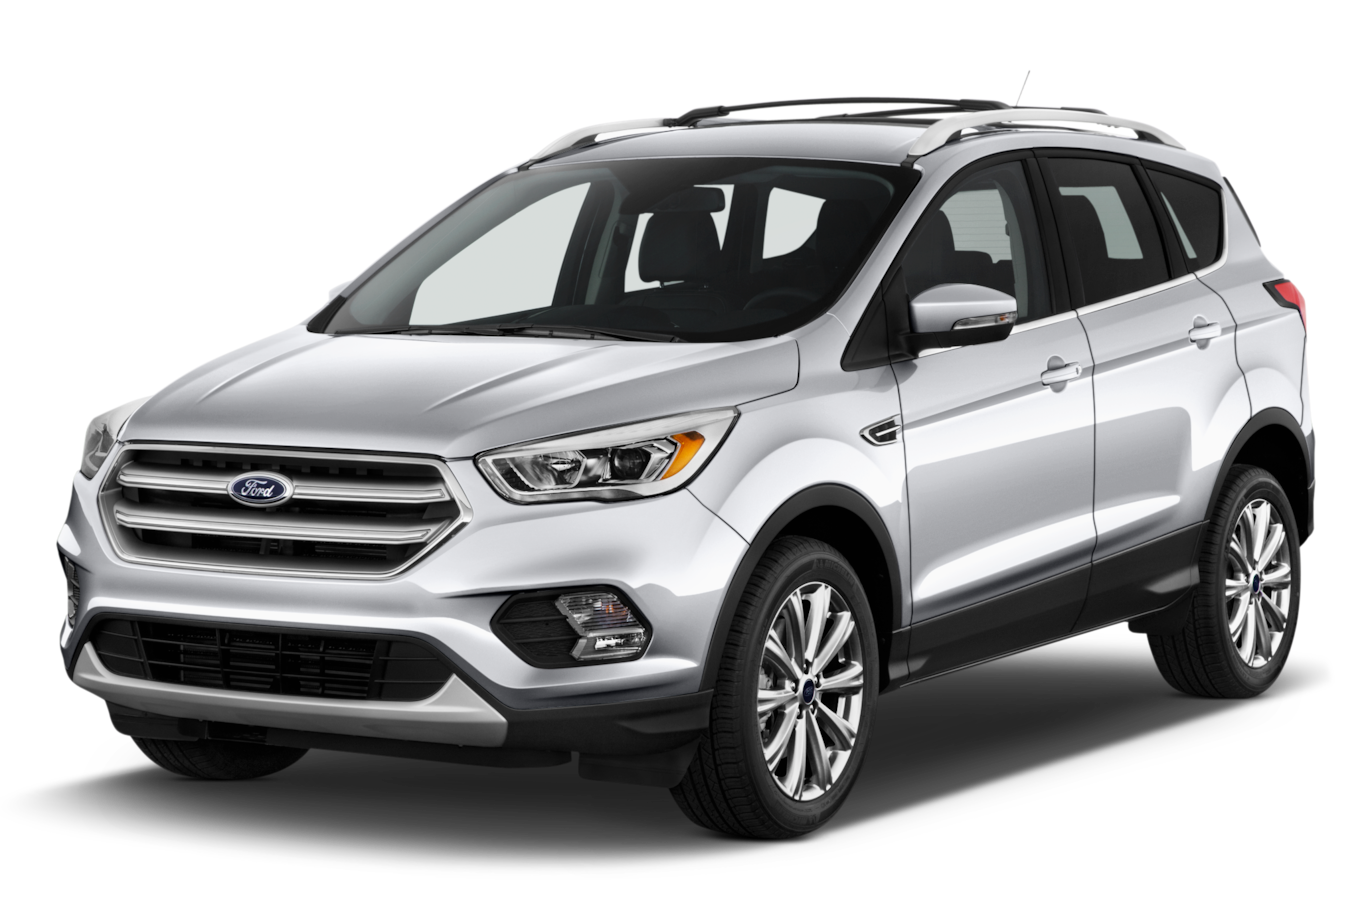 Ford_escape_20190729